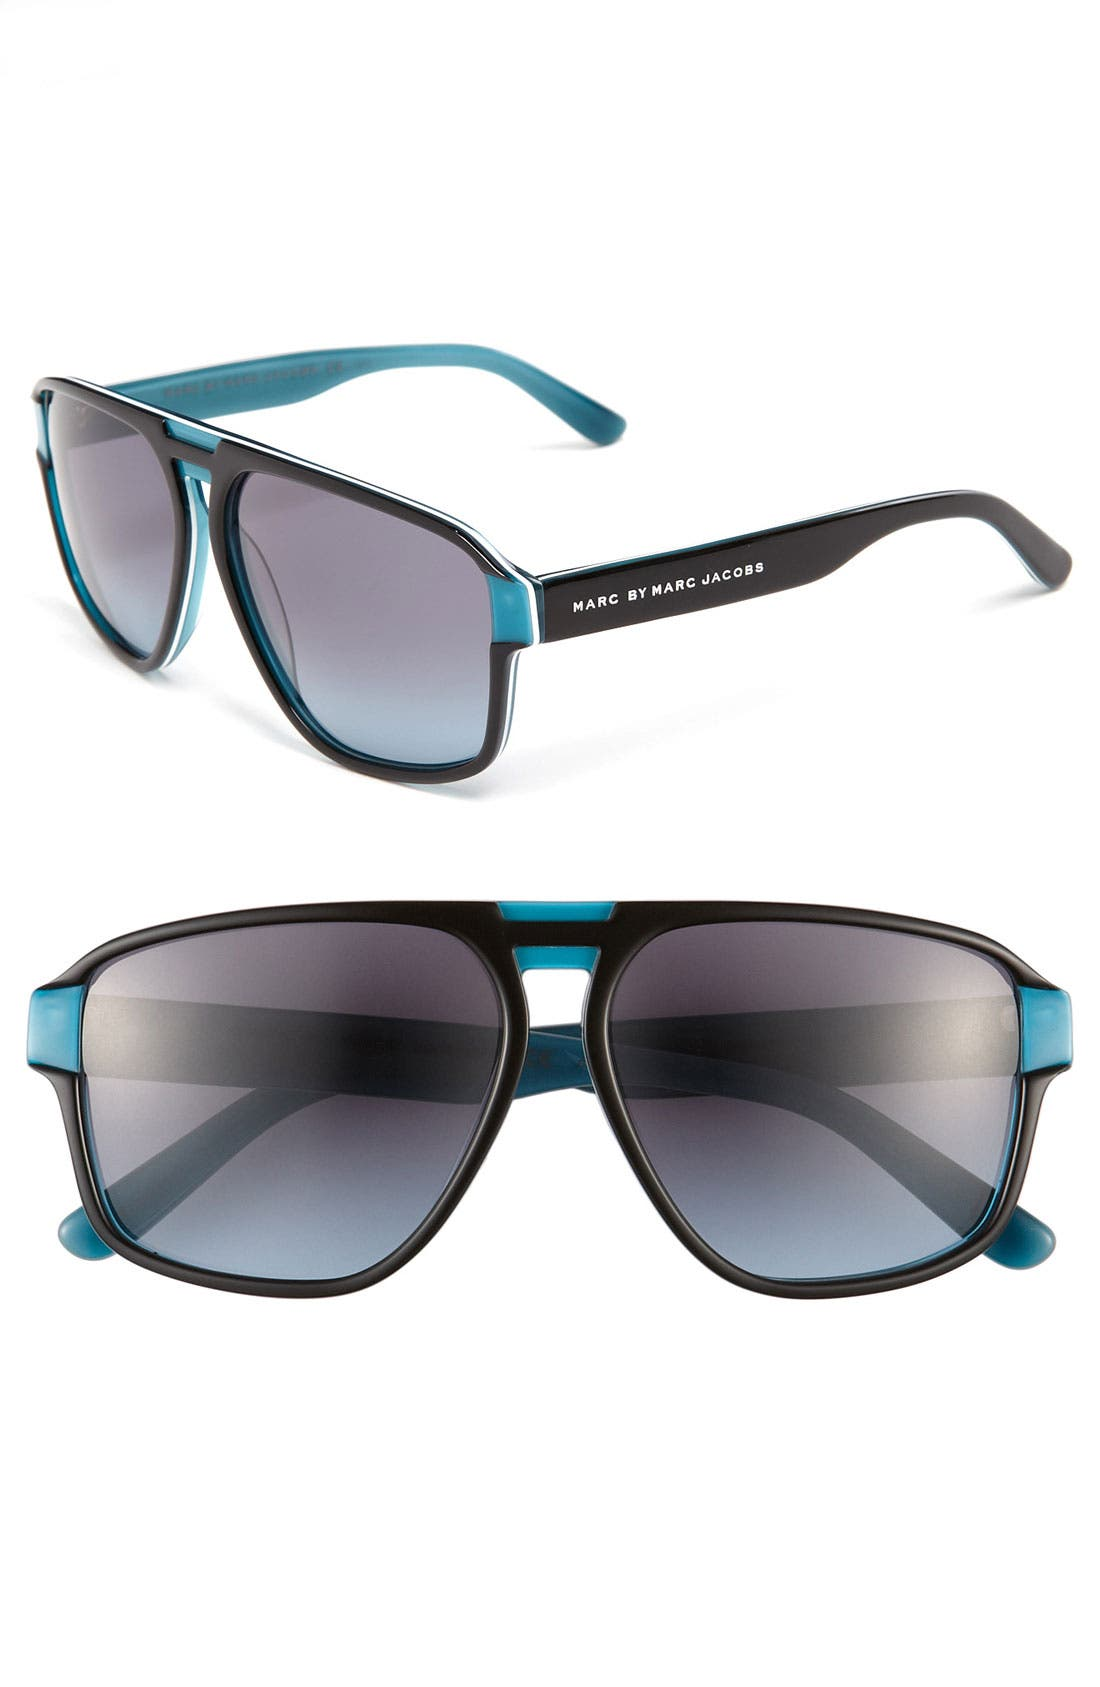 Main Image - MARC BY MARC JACOBS Retro 58mm Sunglasses